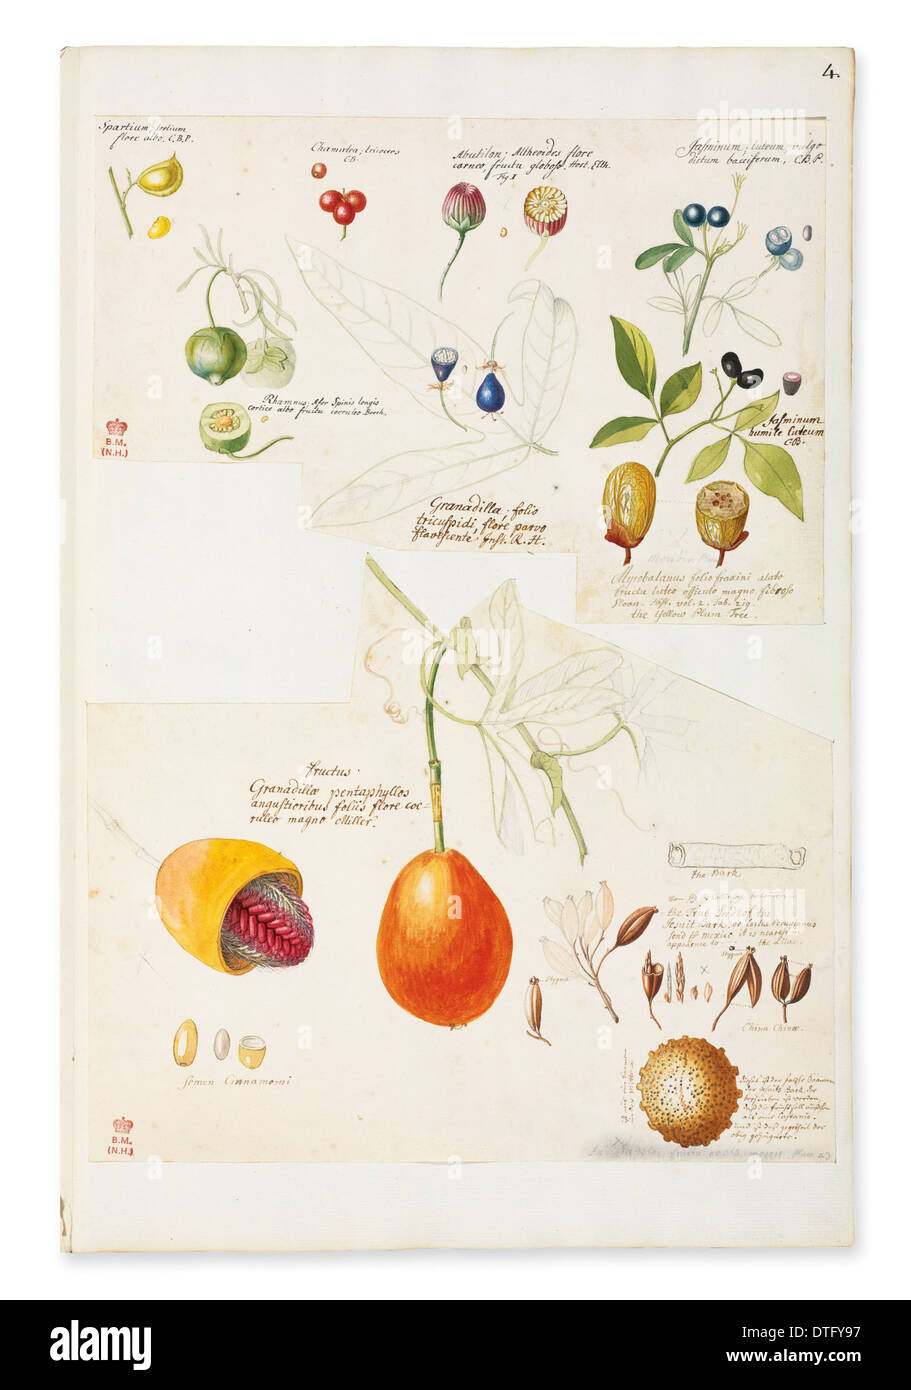 Illustration of rare fruits and seed - Stock Image